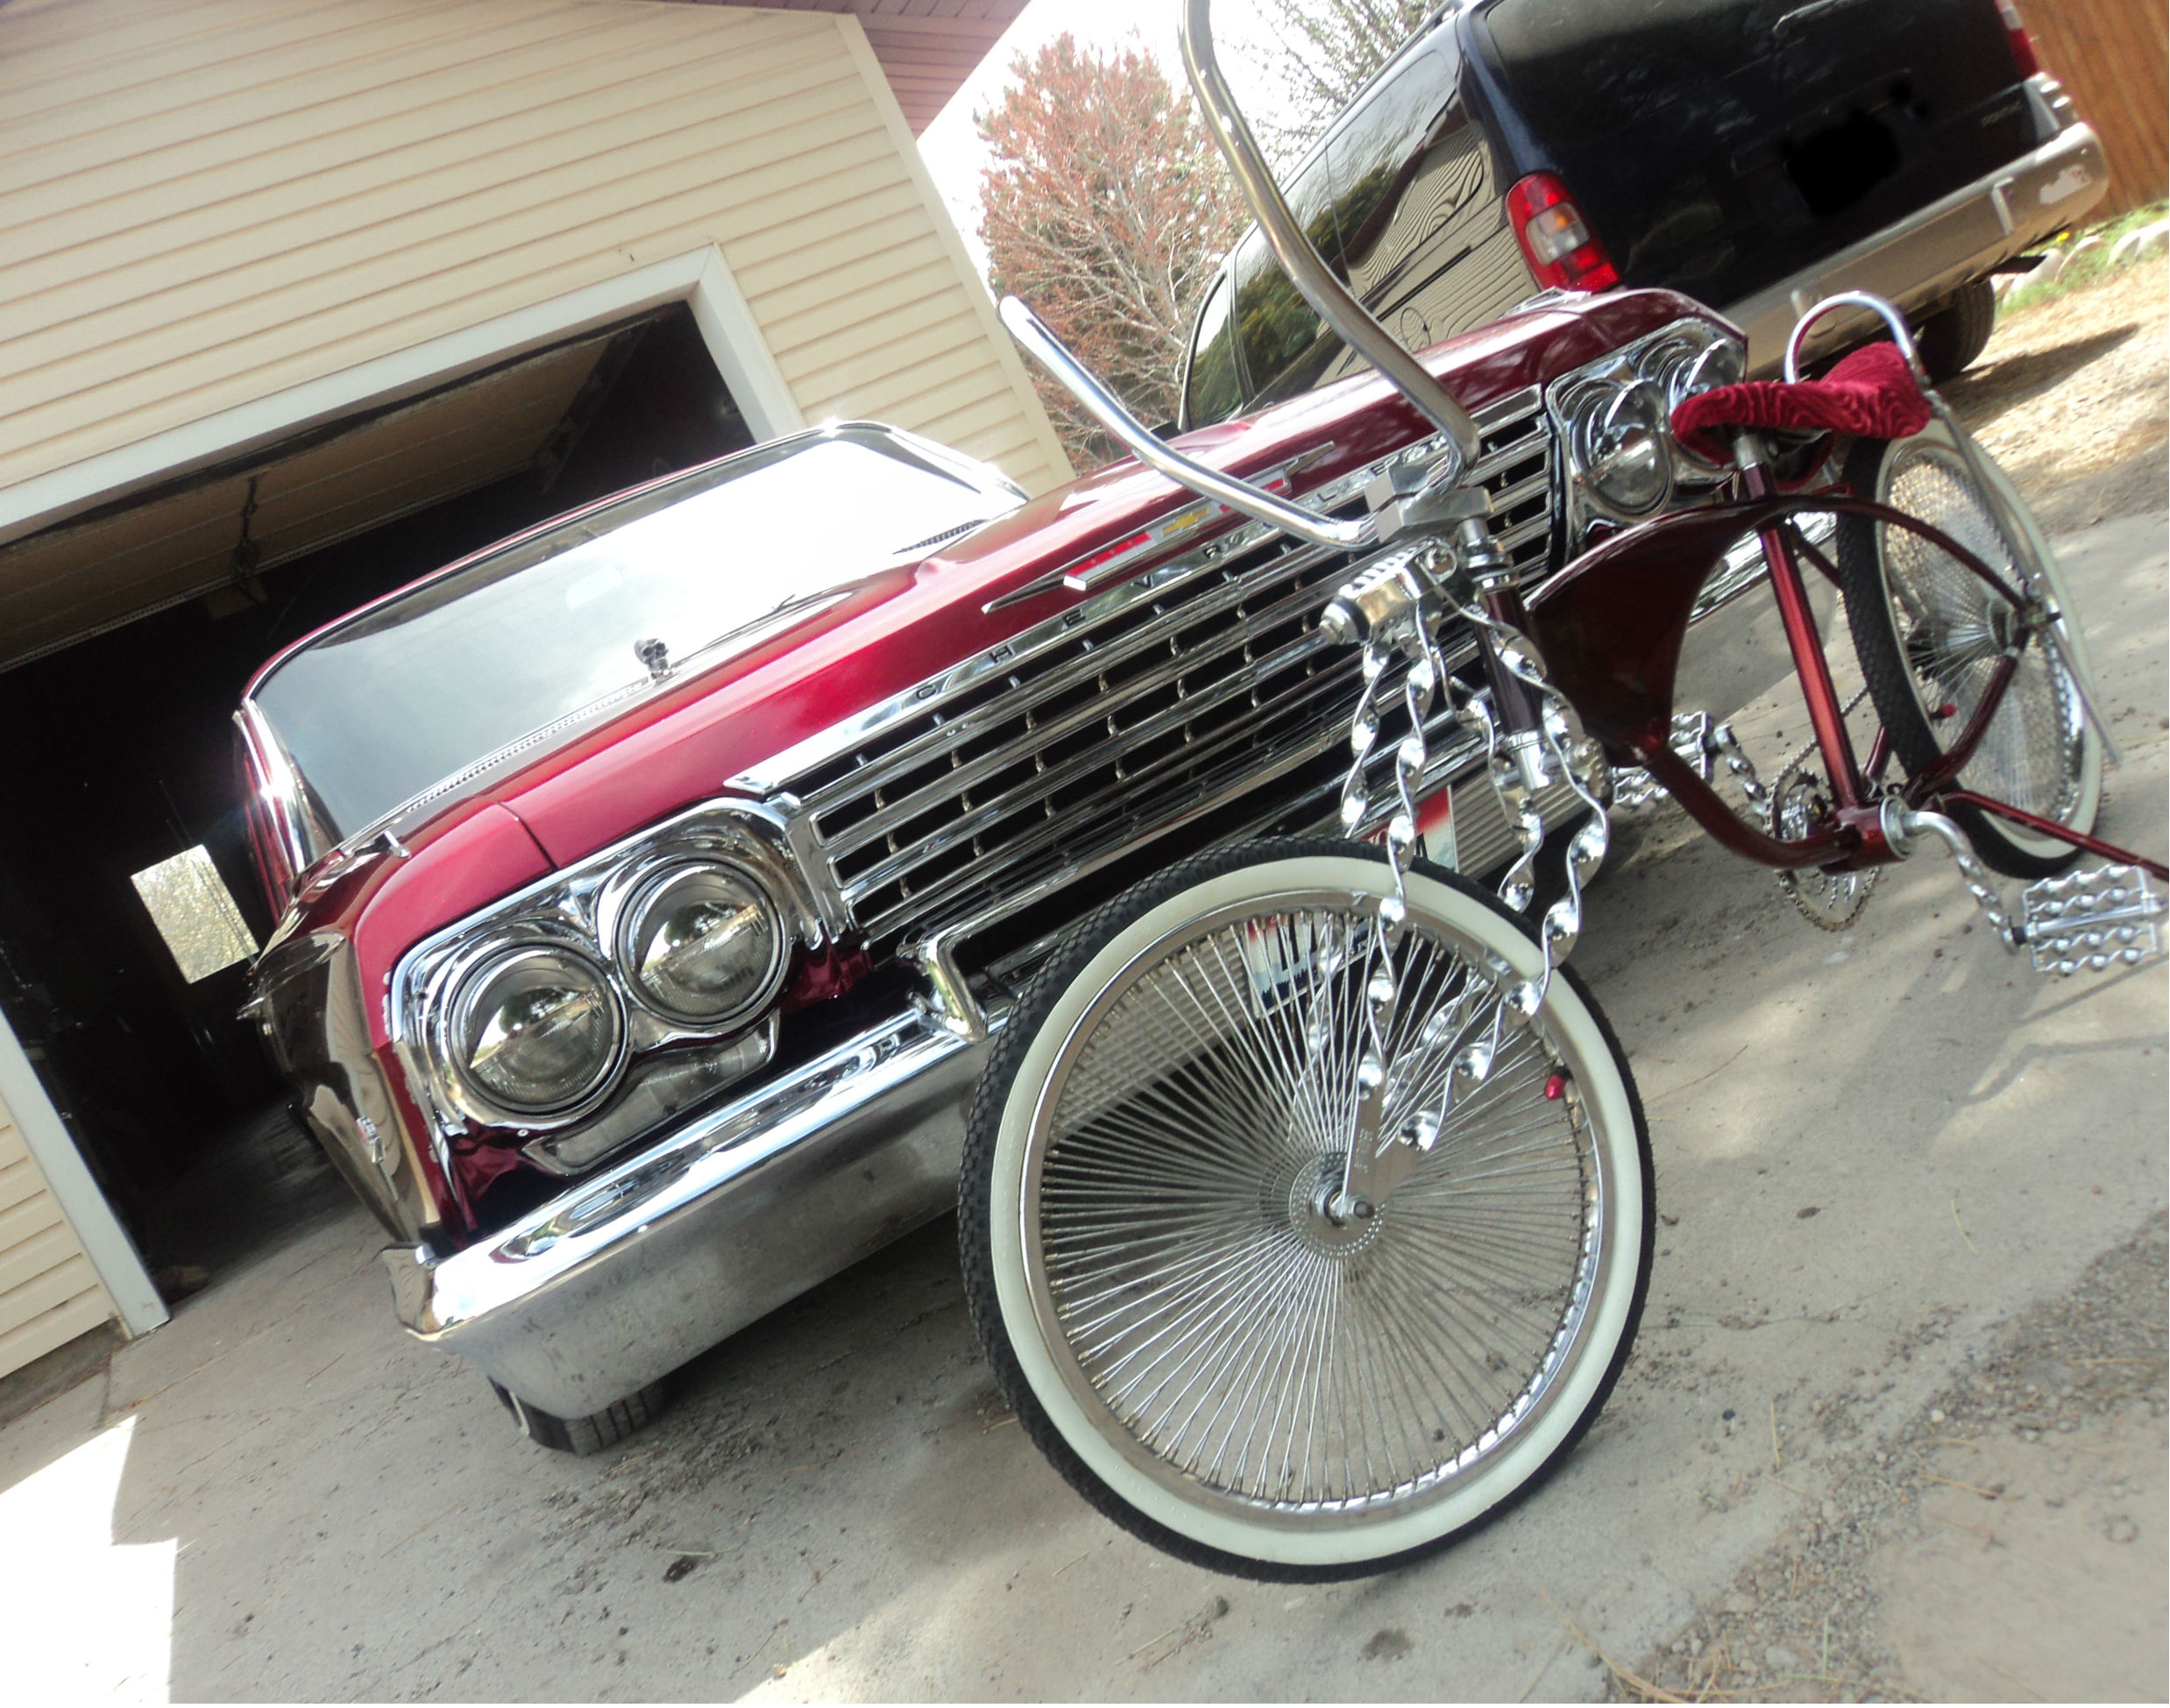 Craigslist Idaho Falls >> 1962 impala wagon lowrider for sale or trade.. | The H.A.M.B.